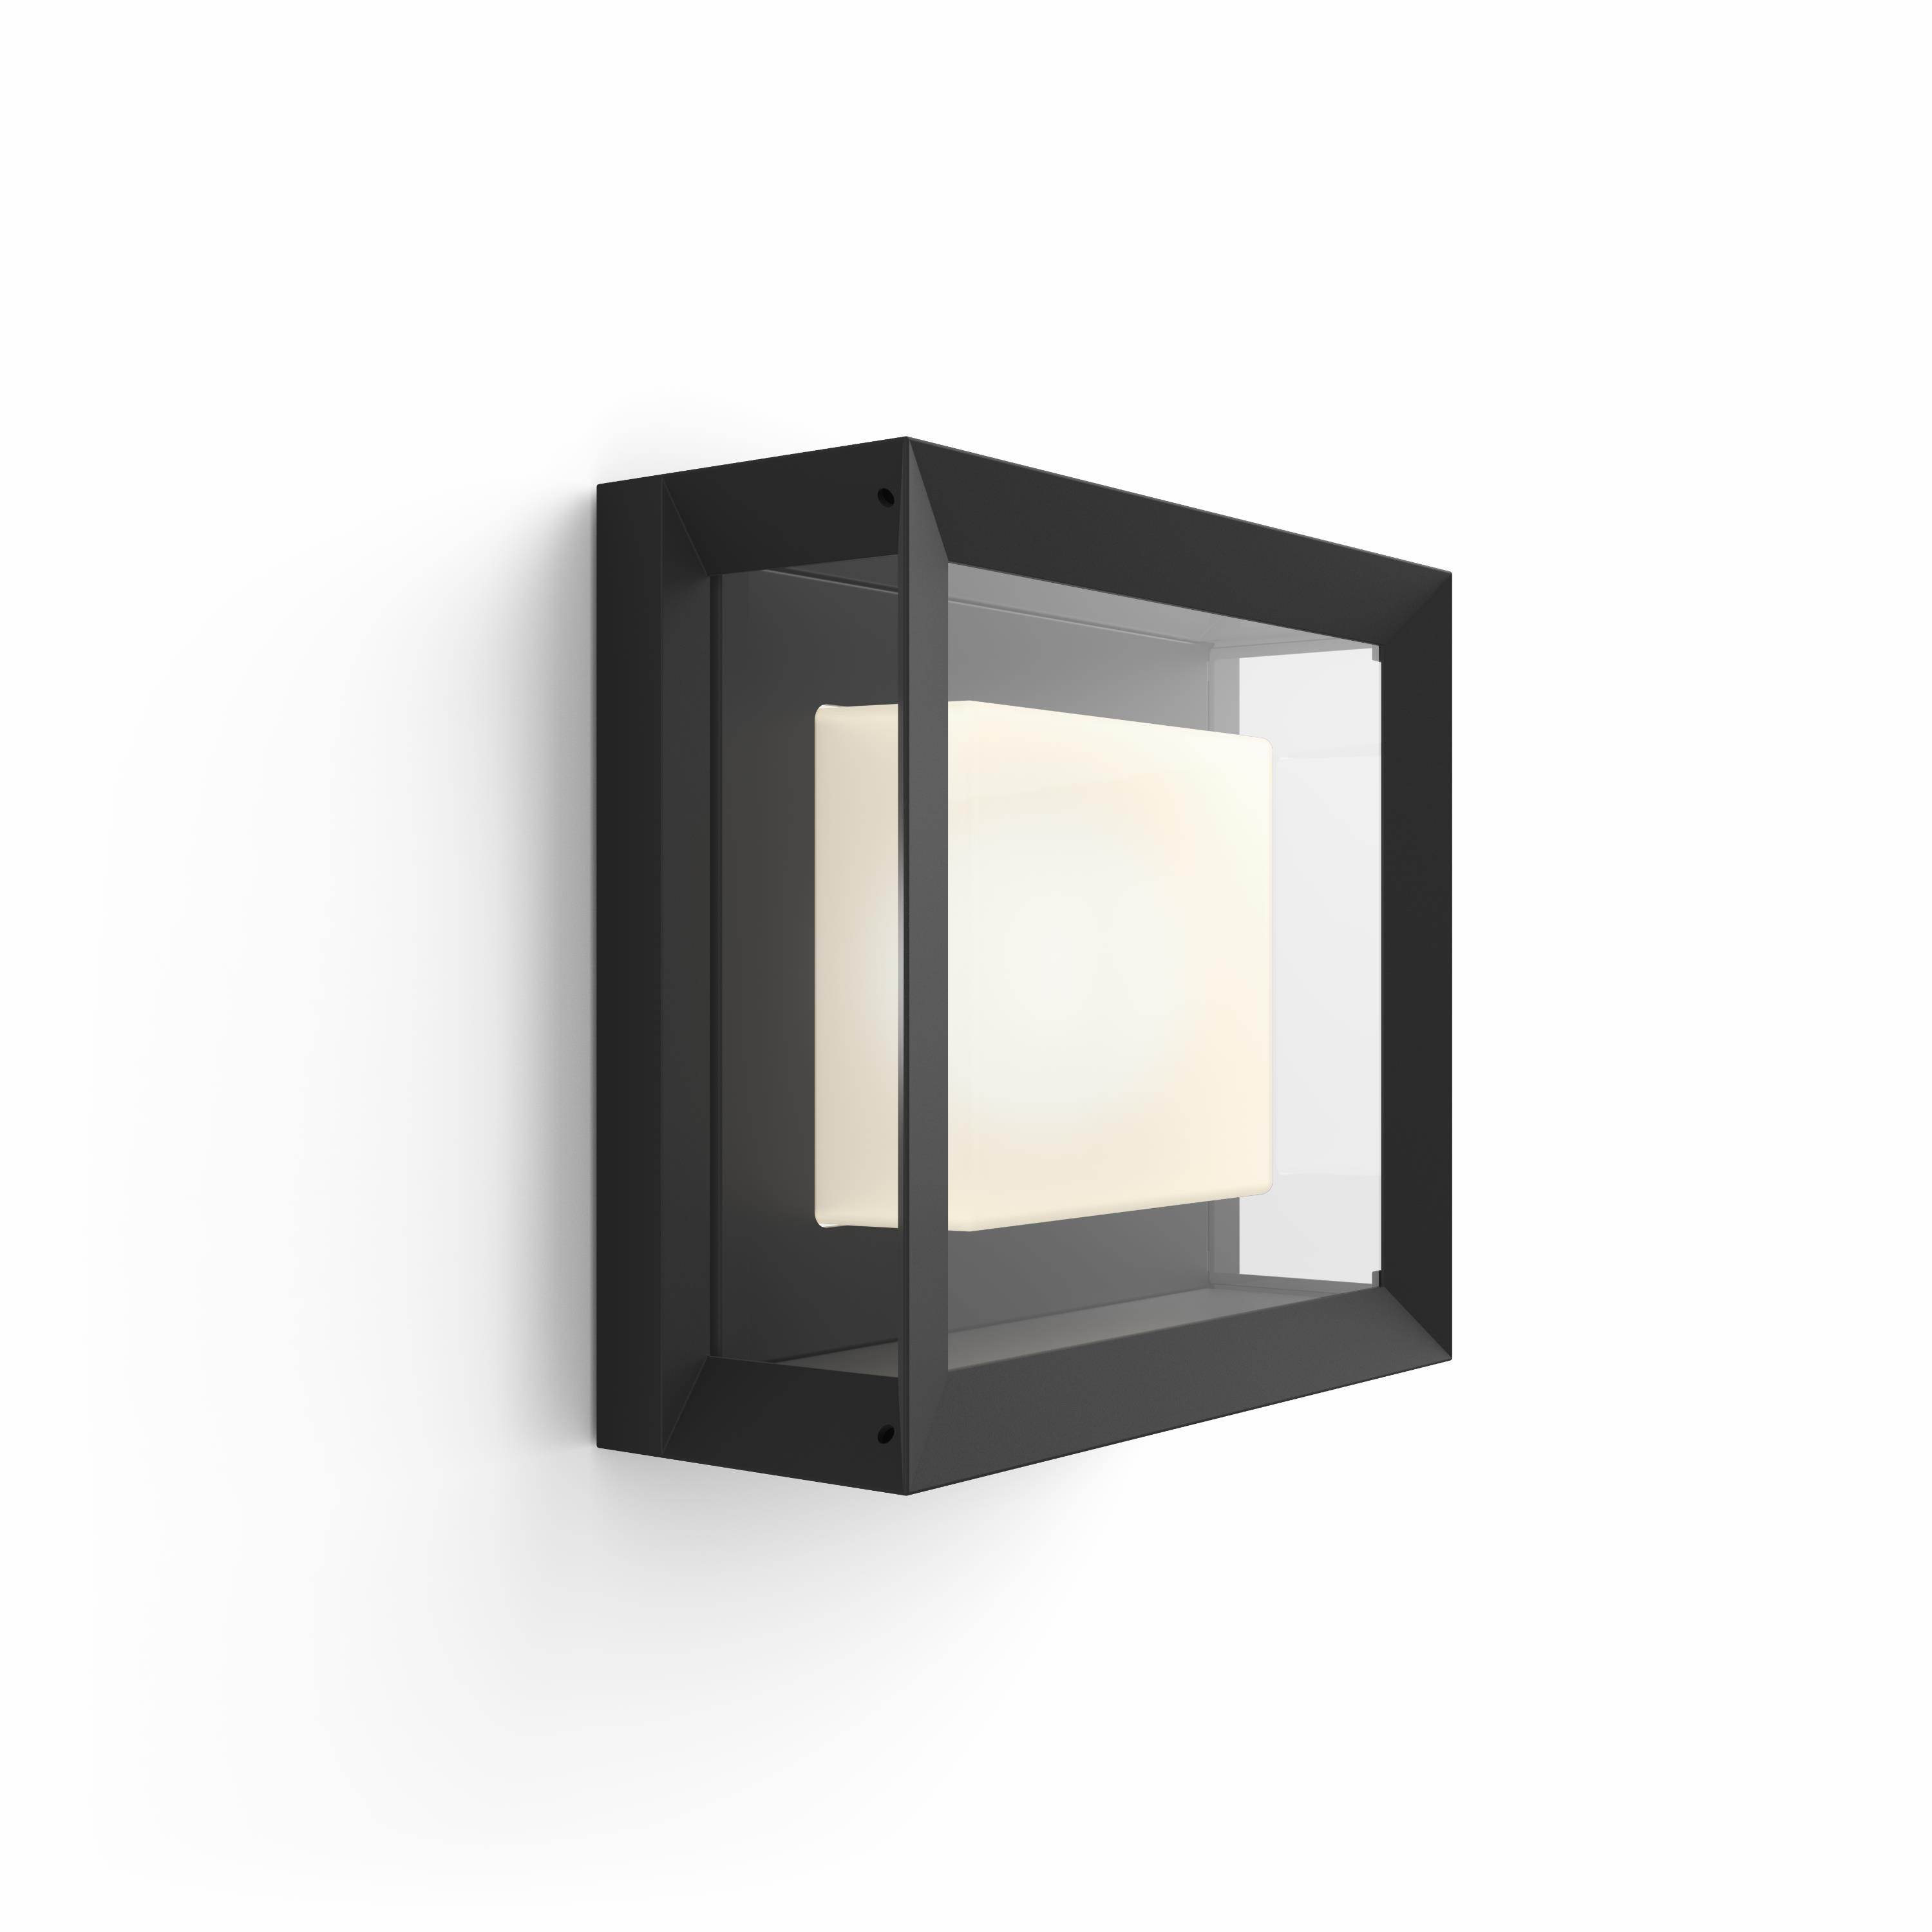 Philips Hue - Econic Square Wall Lantern Schwarz - Weiß & Farbe Ambiance